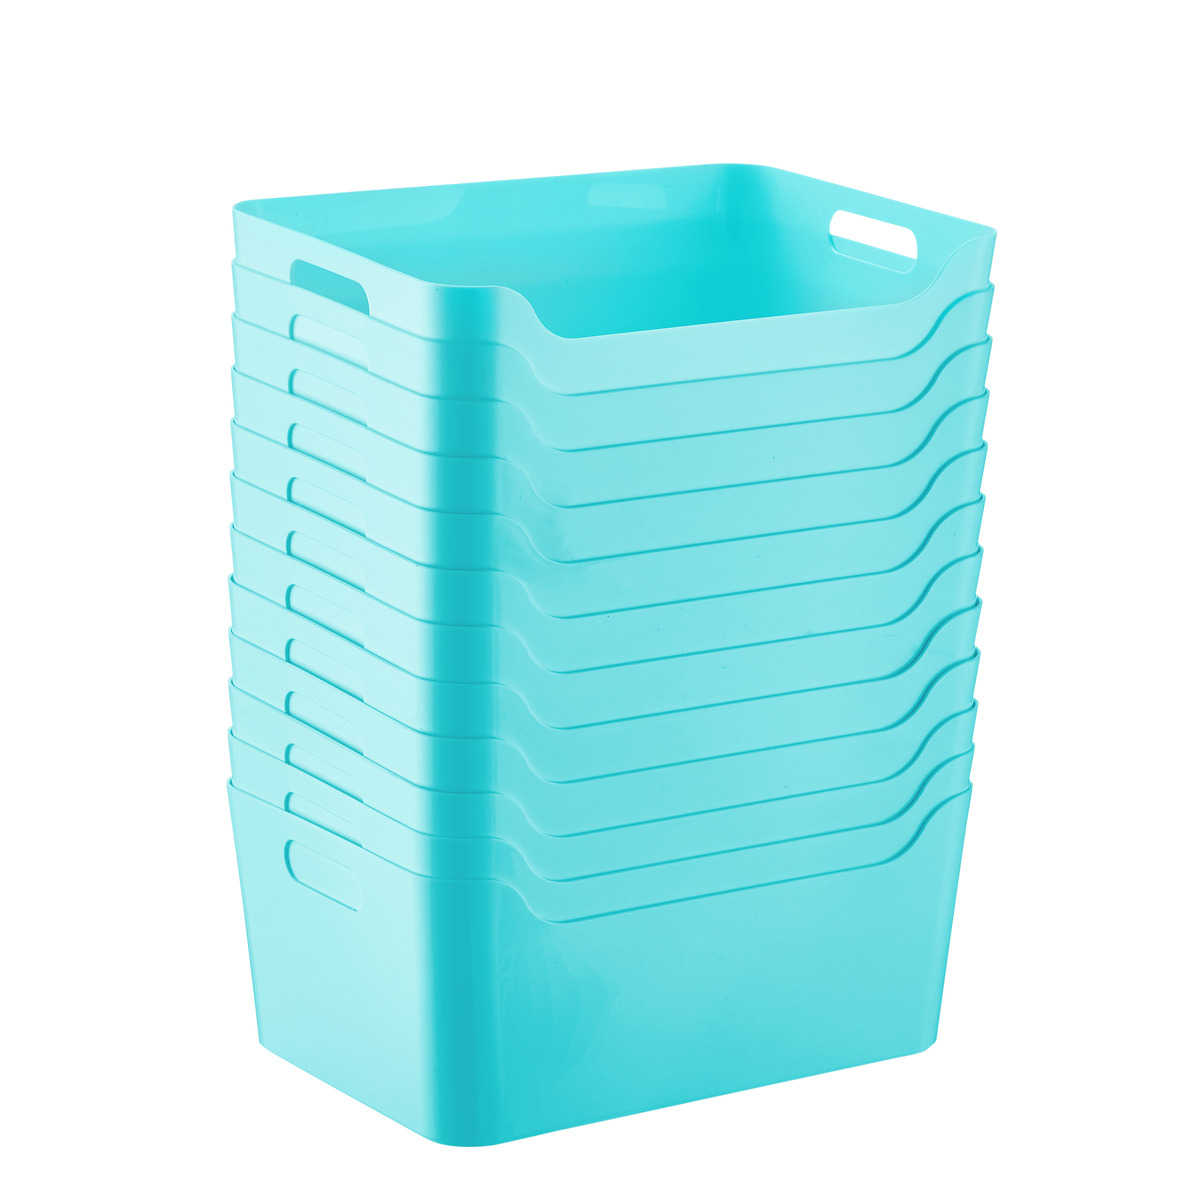 Case of 12 of Aquamarine Plastic Storage Bins with Handles